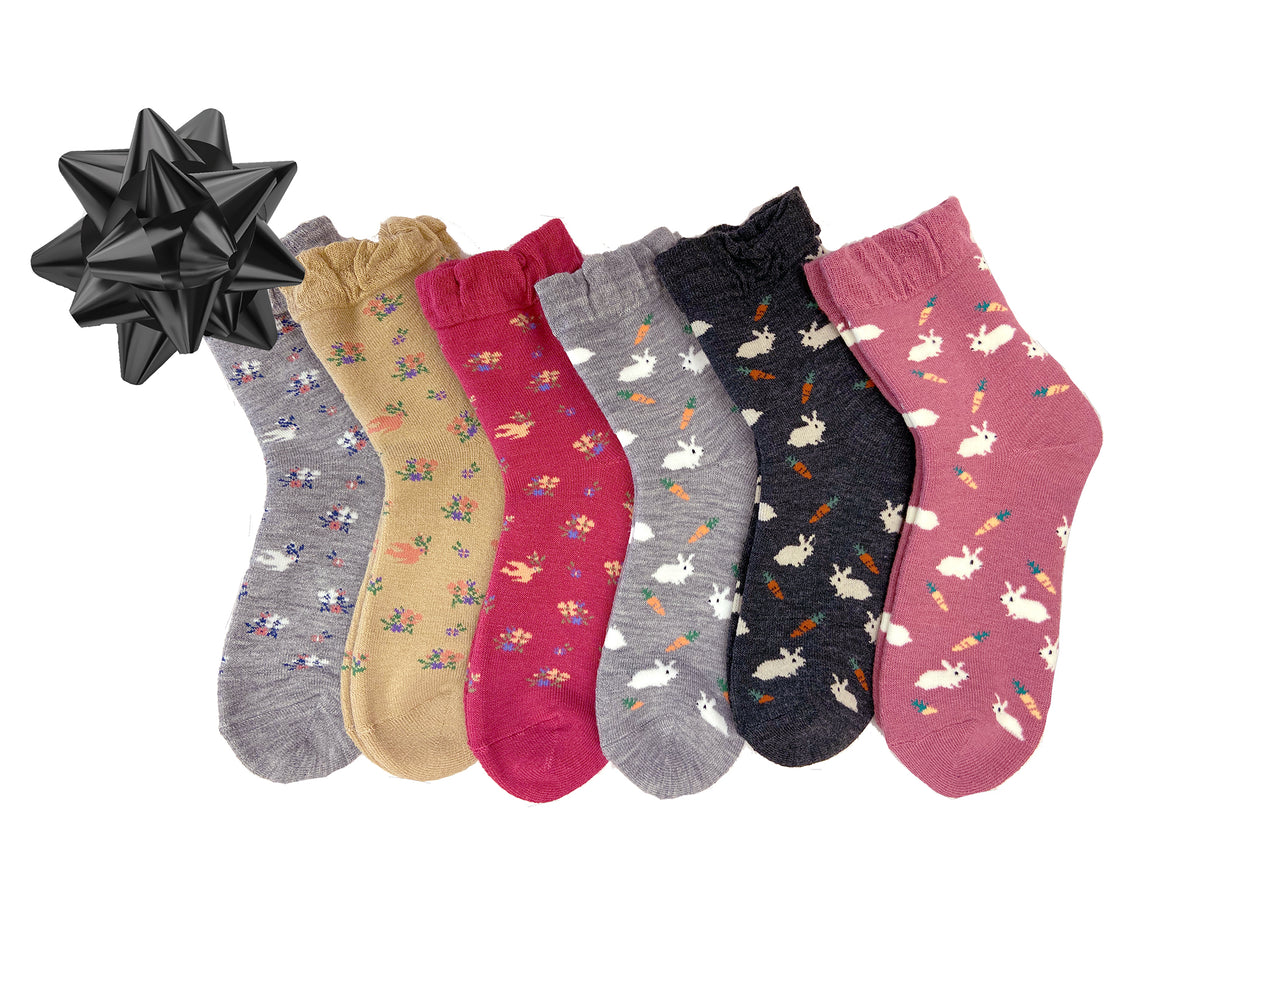 Pack of 6 Rabbit and Dove Patterned Women's Soft Knit Crew Socks - CHERRYSTONE by MARKET TO JAPAN LLC